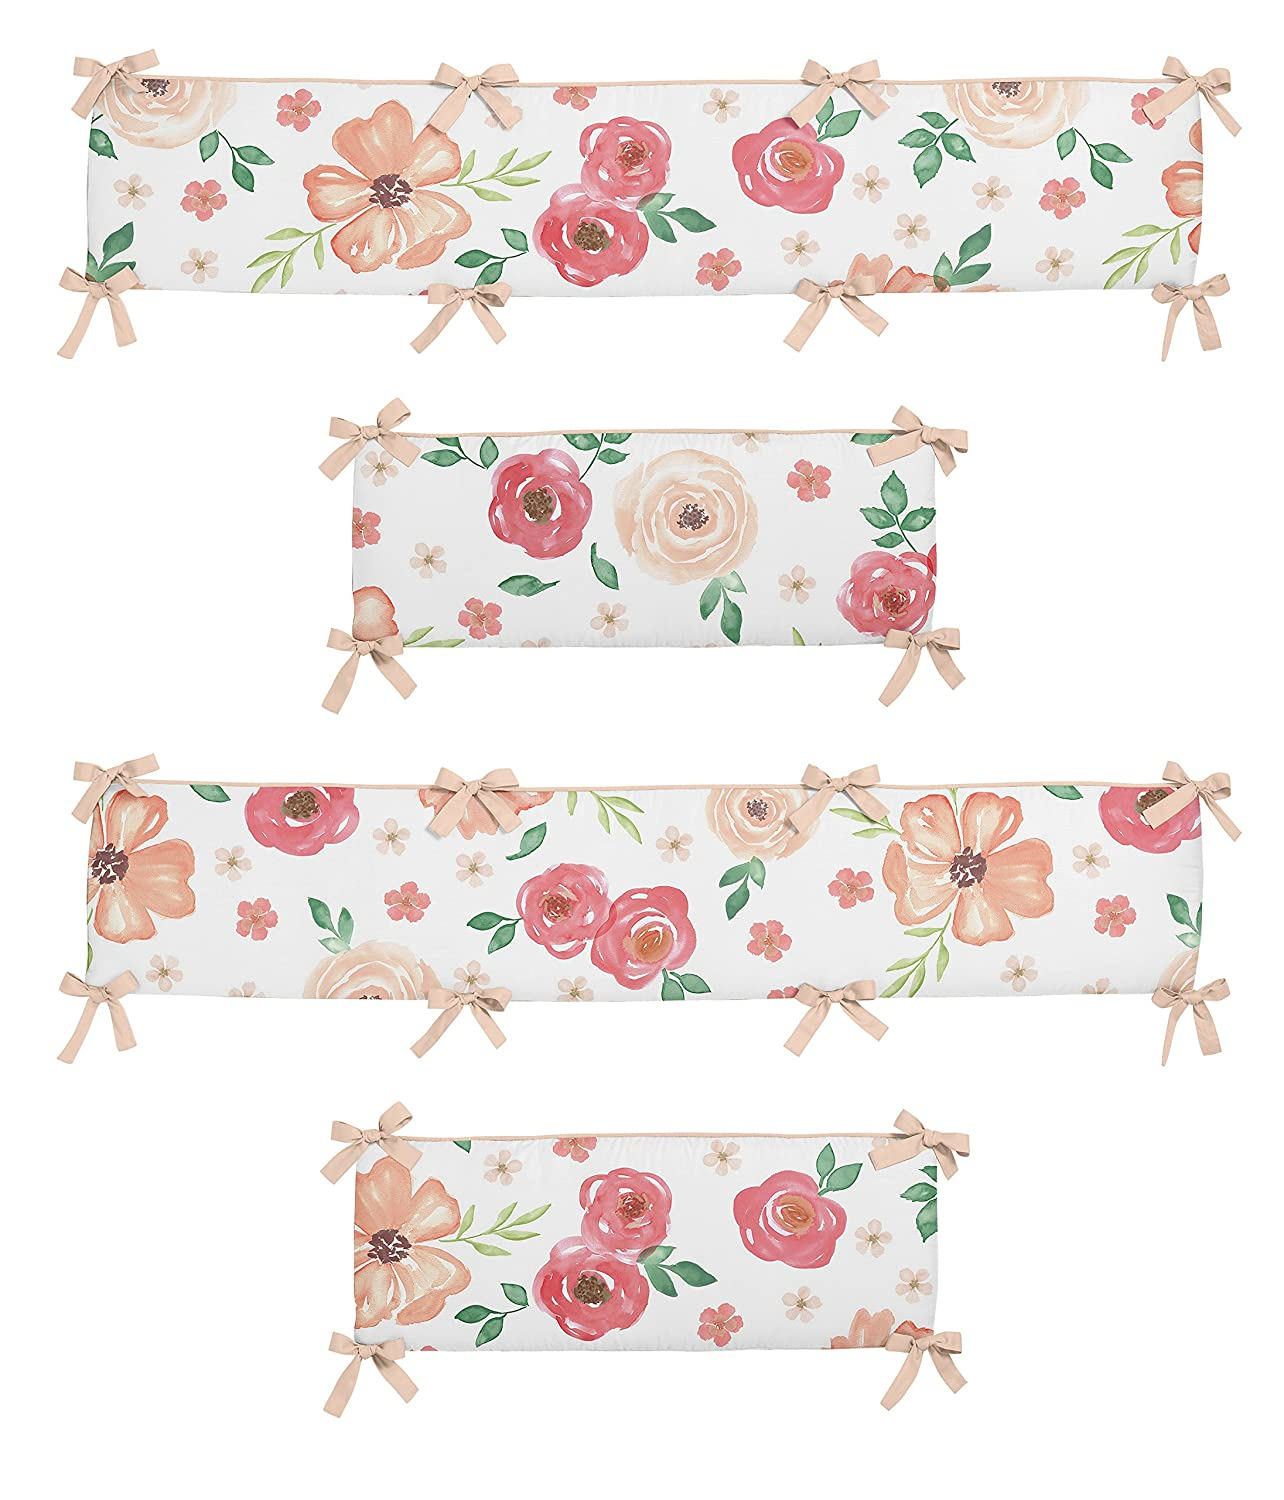 Sweet Jojo Designs Peach and Green Shabby Chic Baby Crib Bumper Pad for Watercolor Floral Collection - Pink Rose Flower